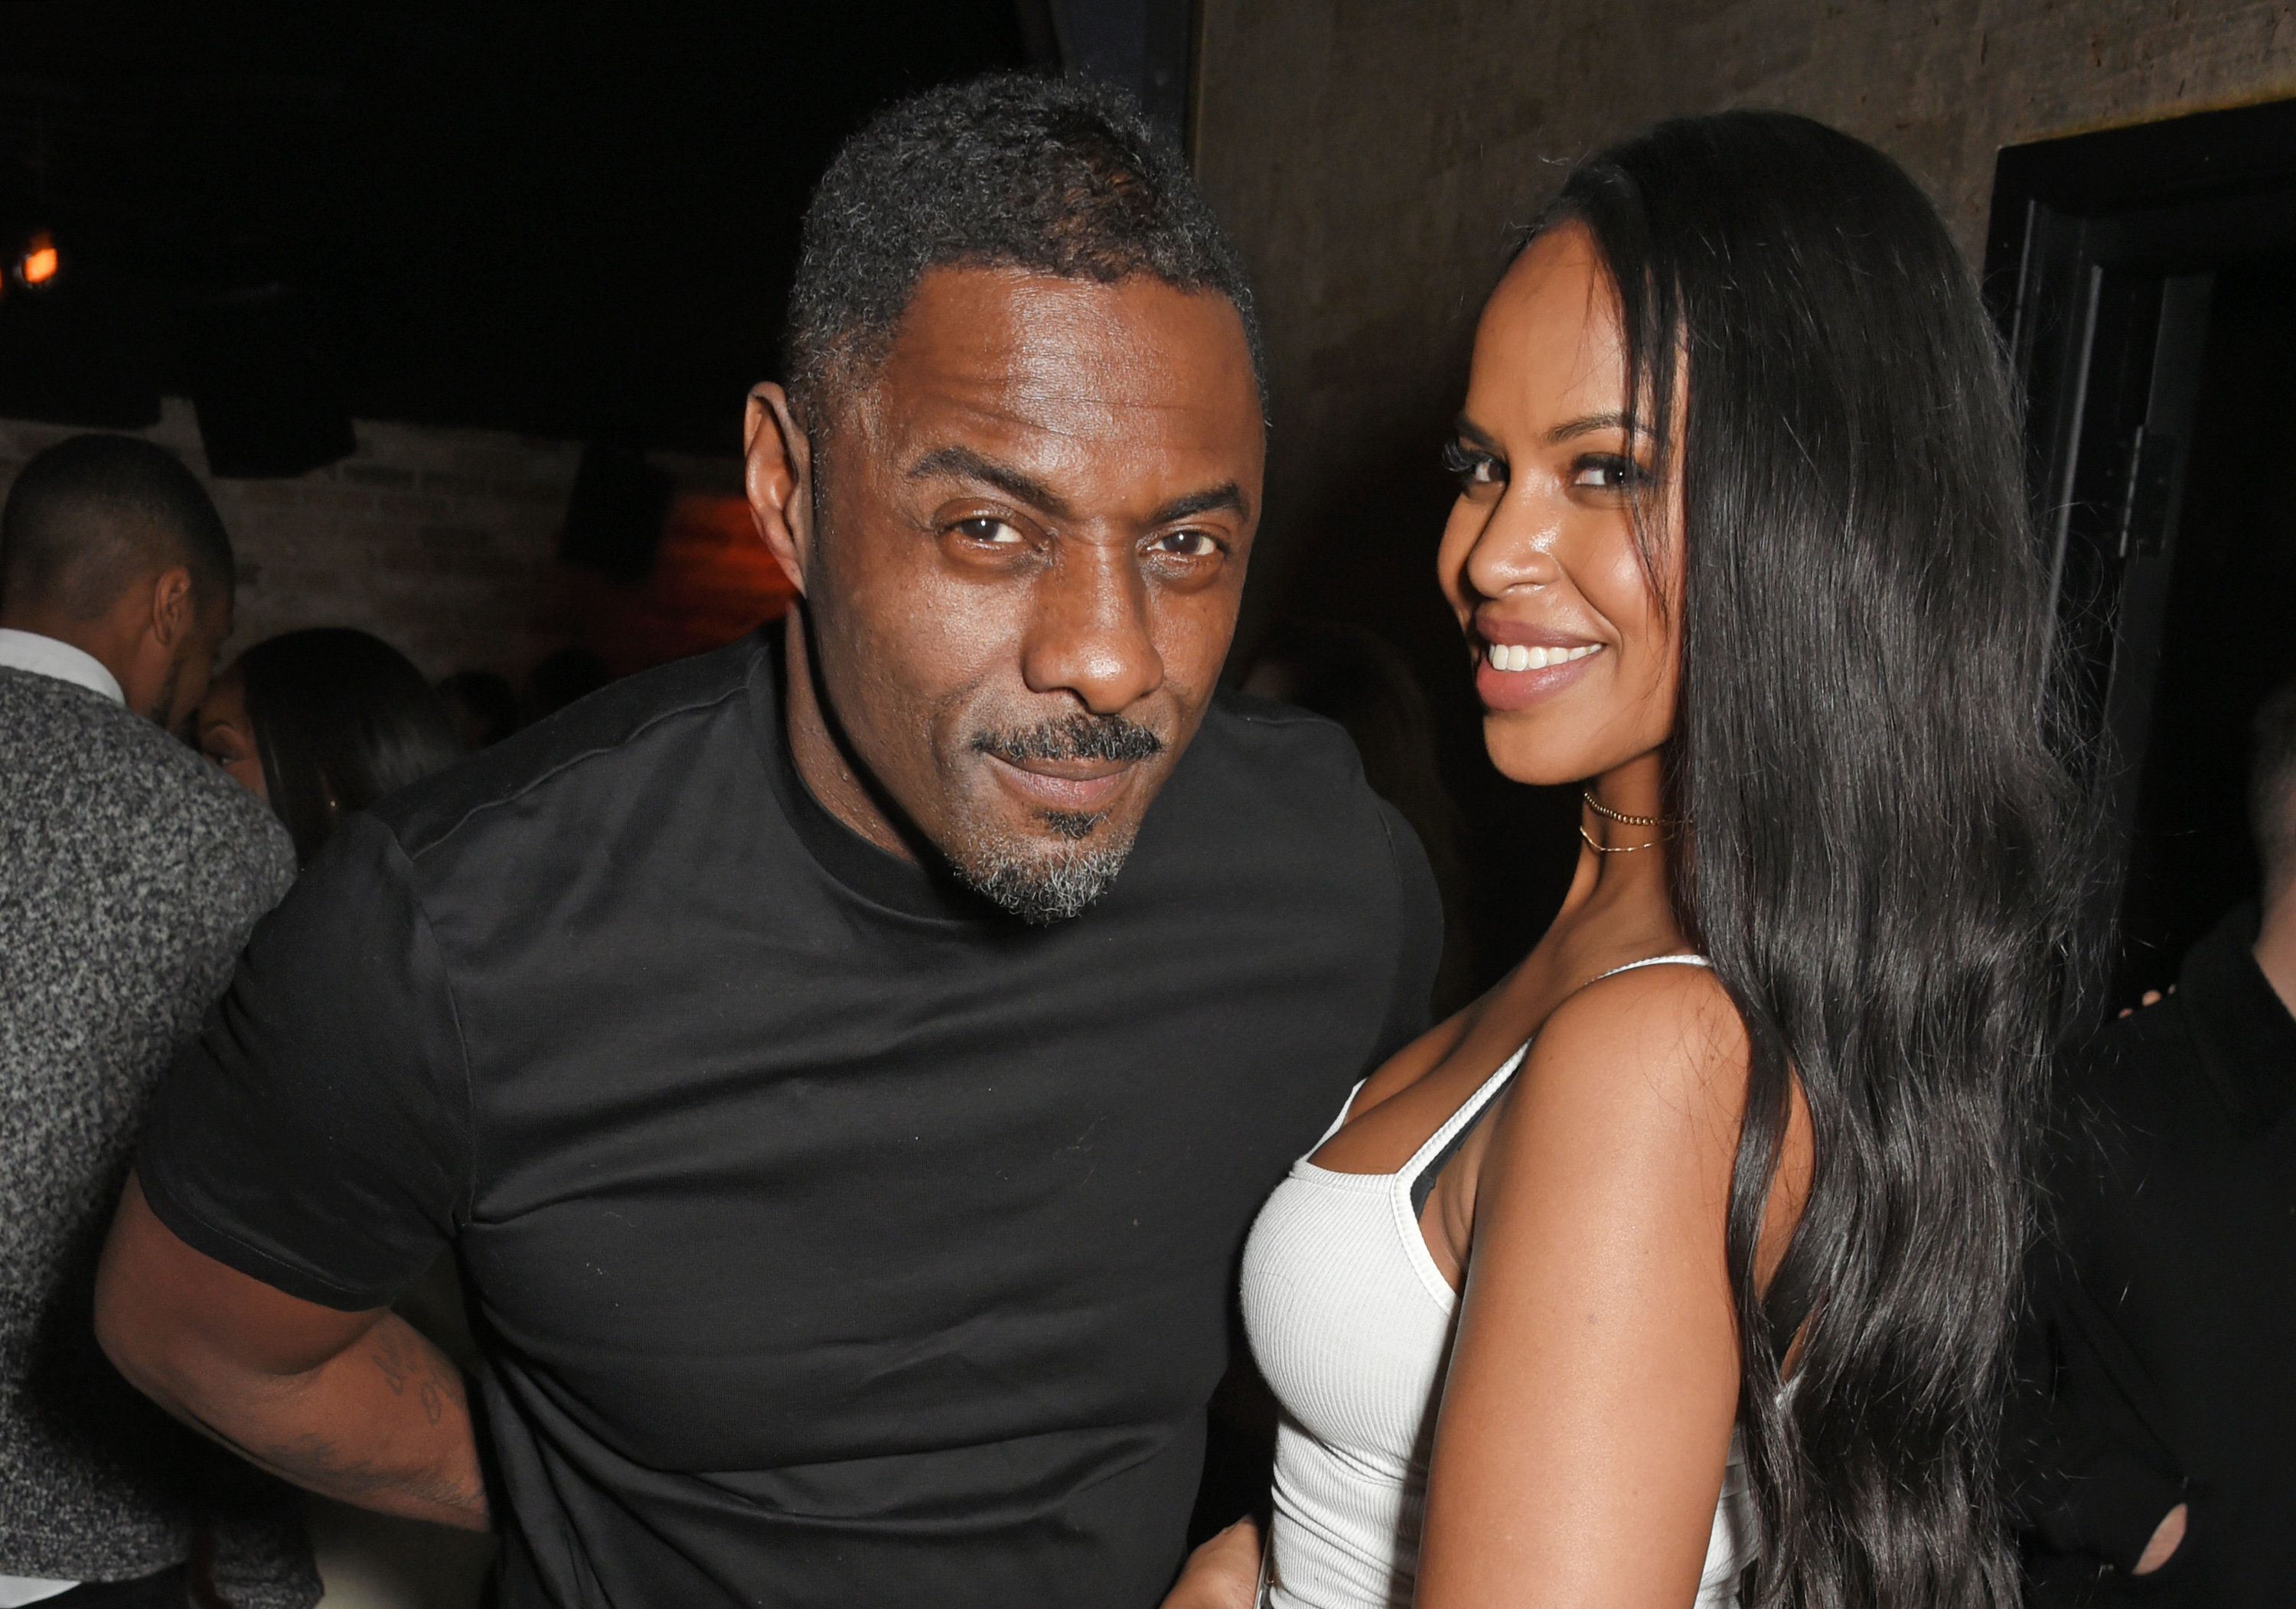 The Dos and Don'ts Of Public Marriage Proposals After Idris Elba Popped The Question On